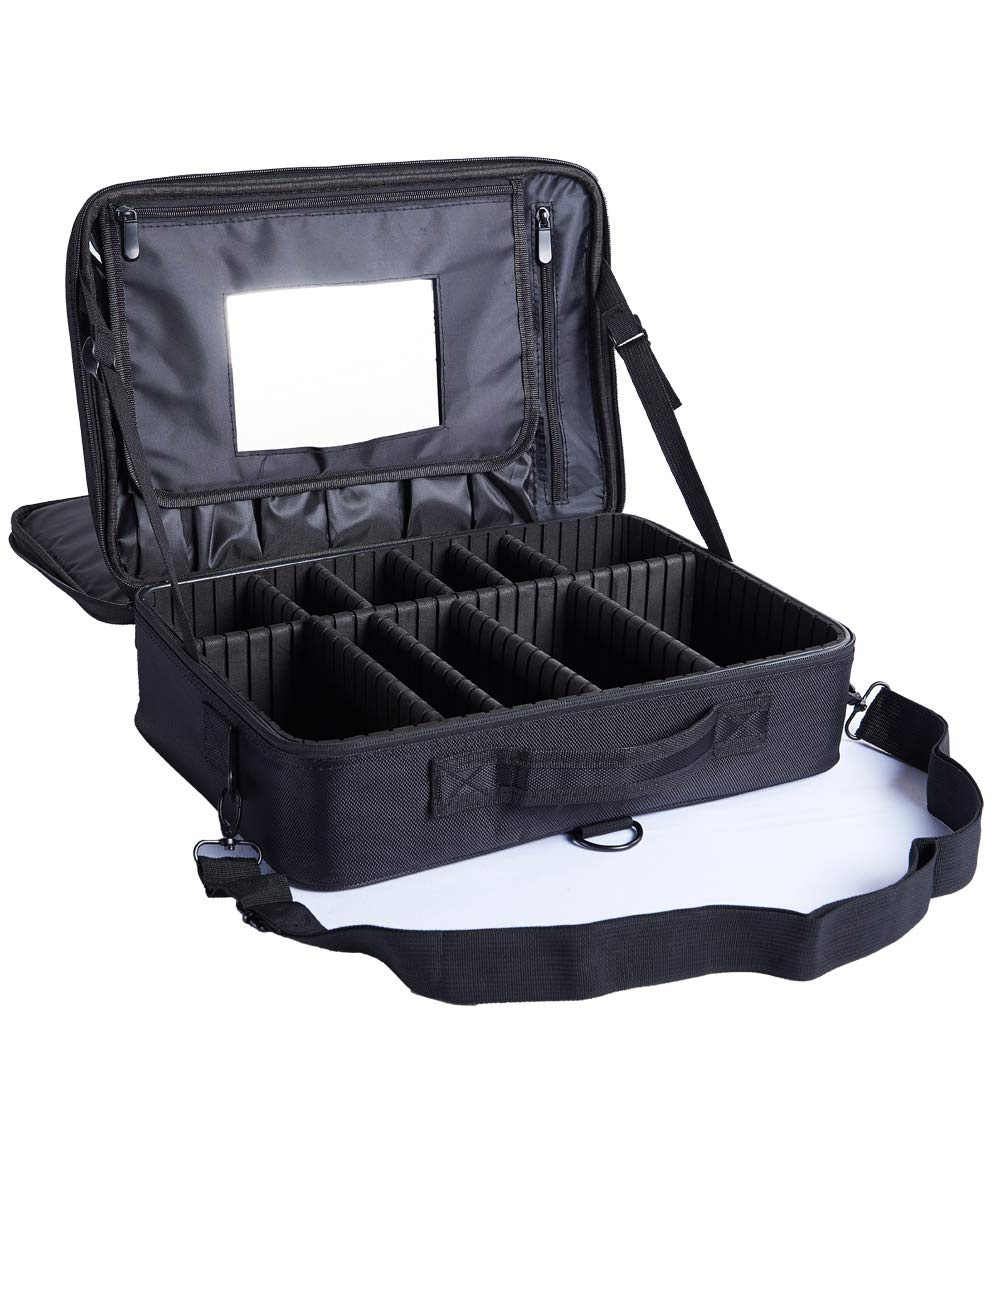 e3f131784950 Makeup case 3 Layers Cosmetic Organiser Travel Makeup Train Case Makeup Bag  with Adjustable Dividers for Cosmetics Makeup Brushes Toiletry Jewellery ...